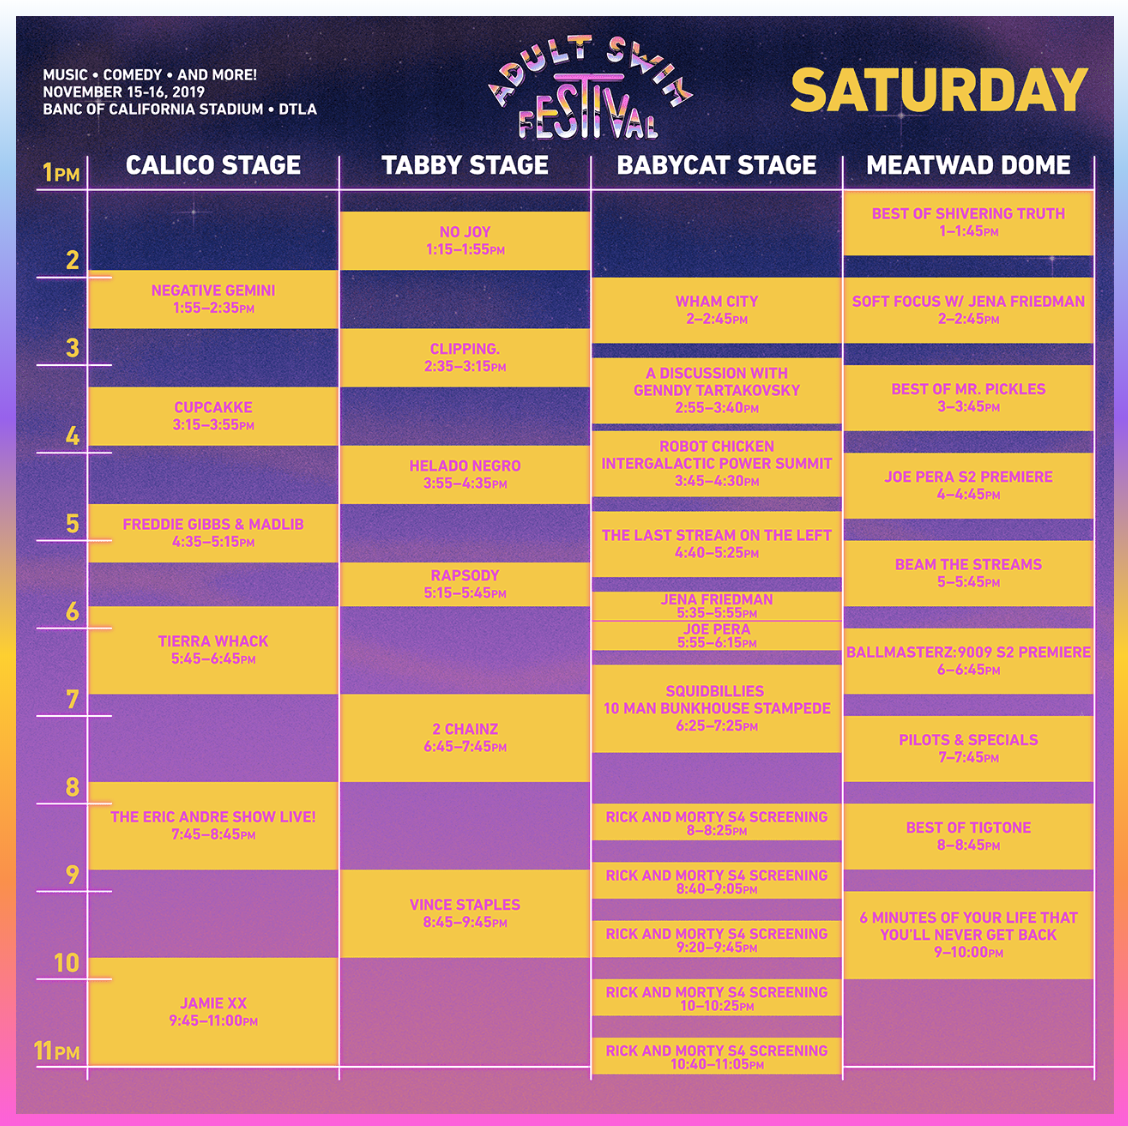 Adult Swim Festival 2019 - Saturday Set Times